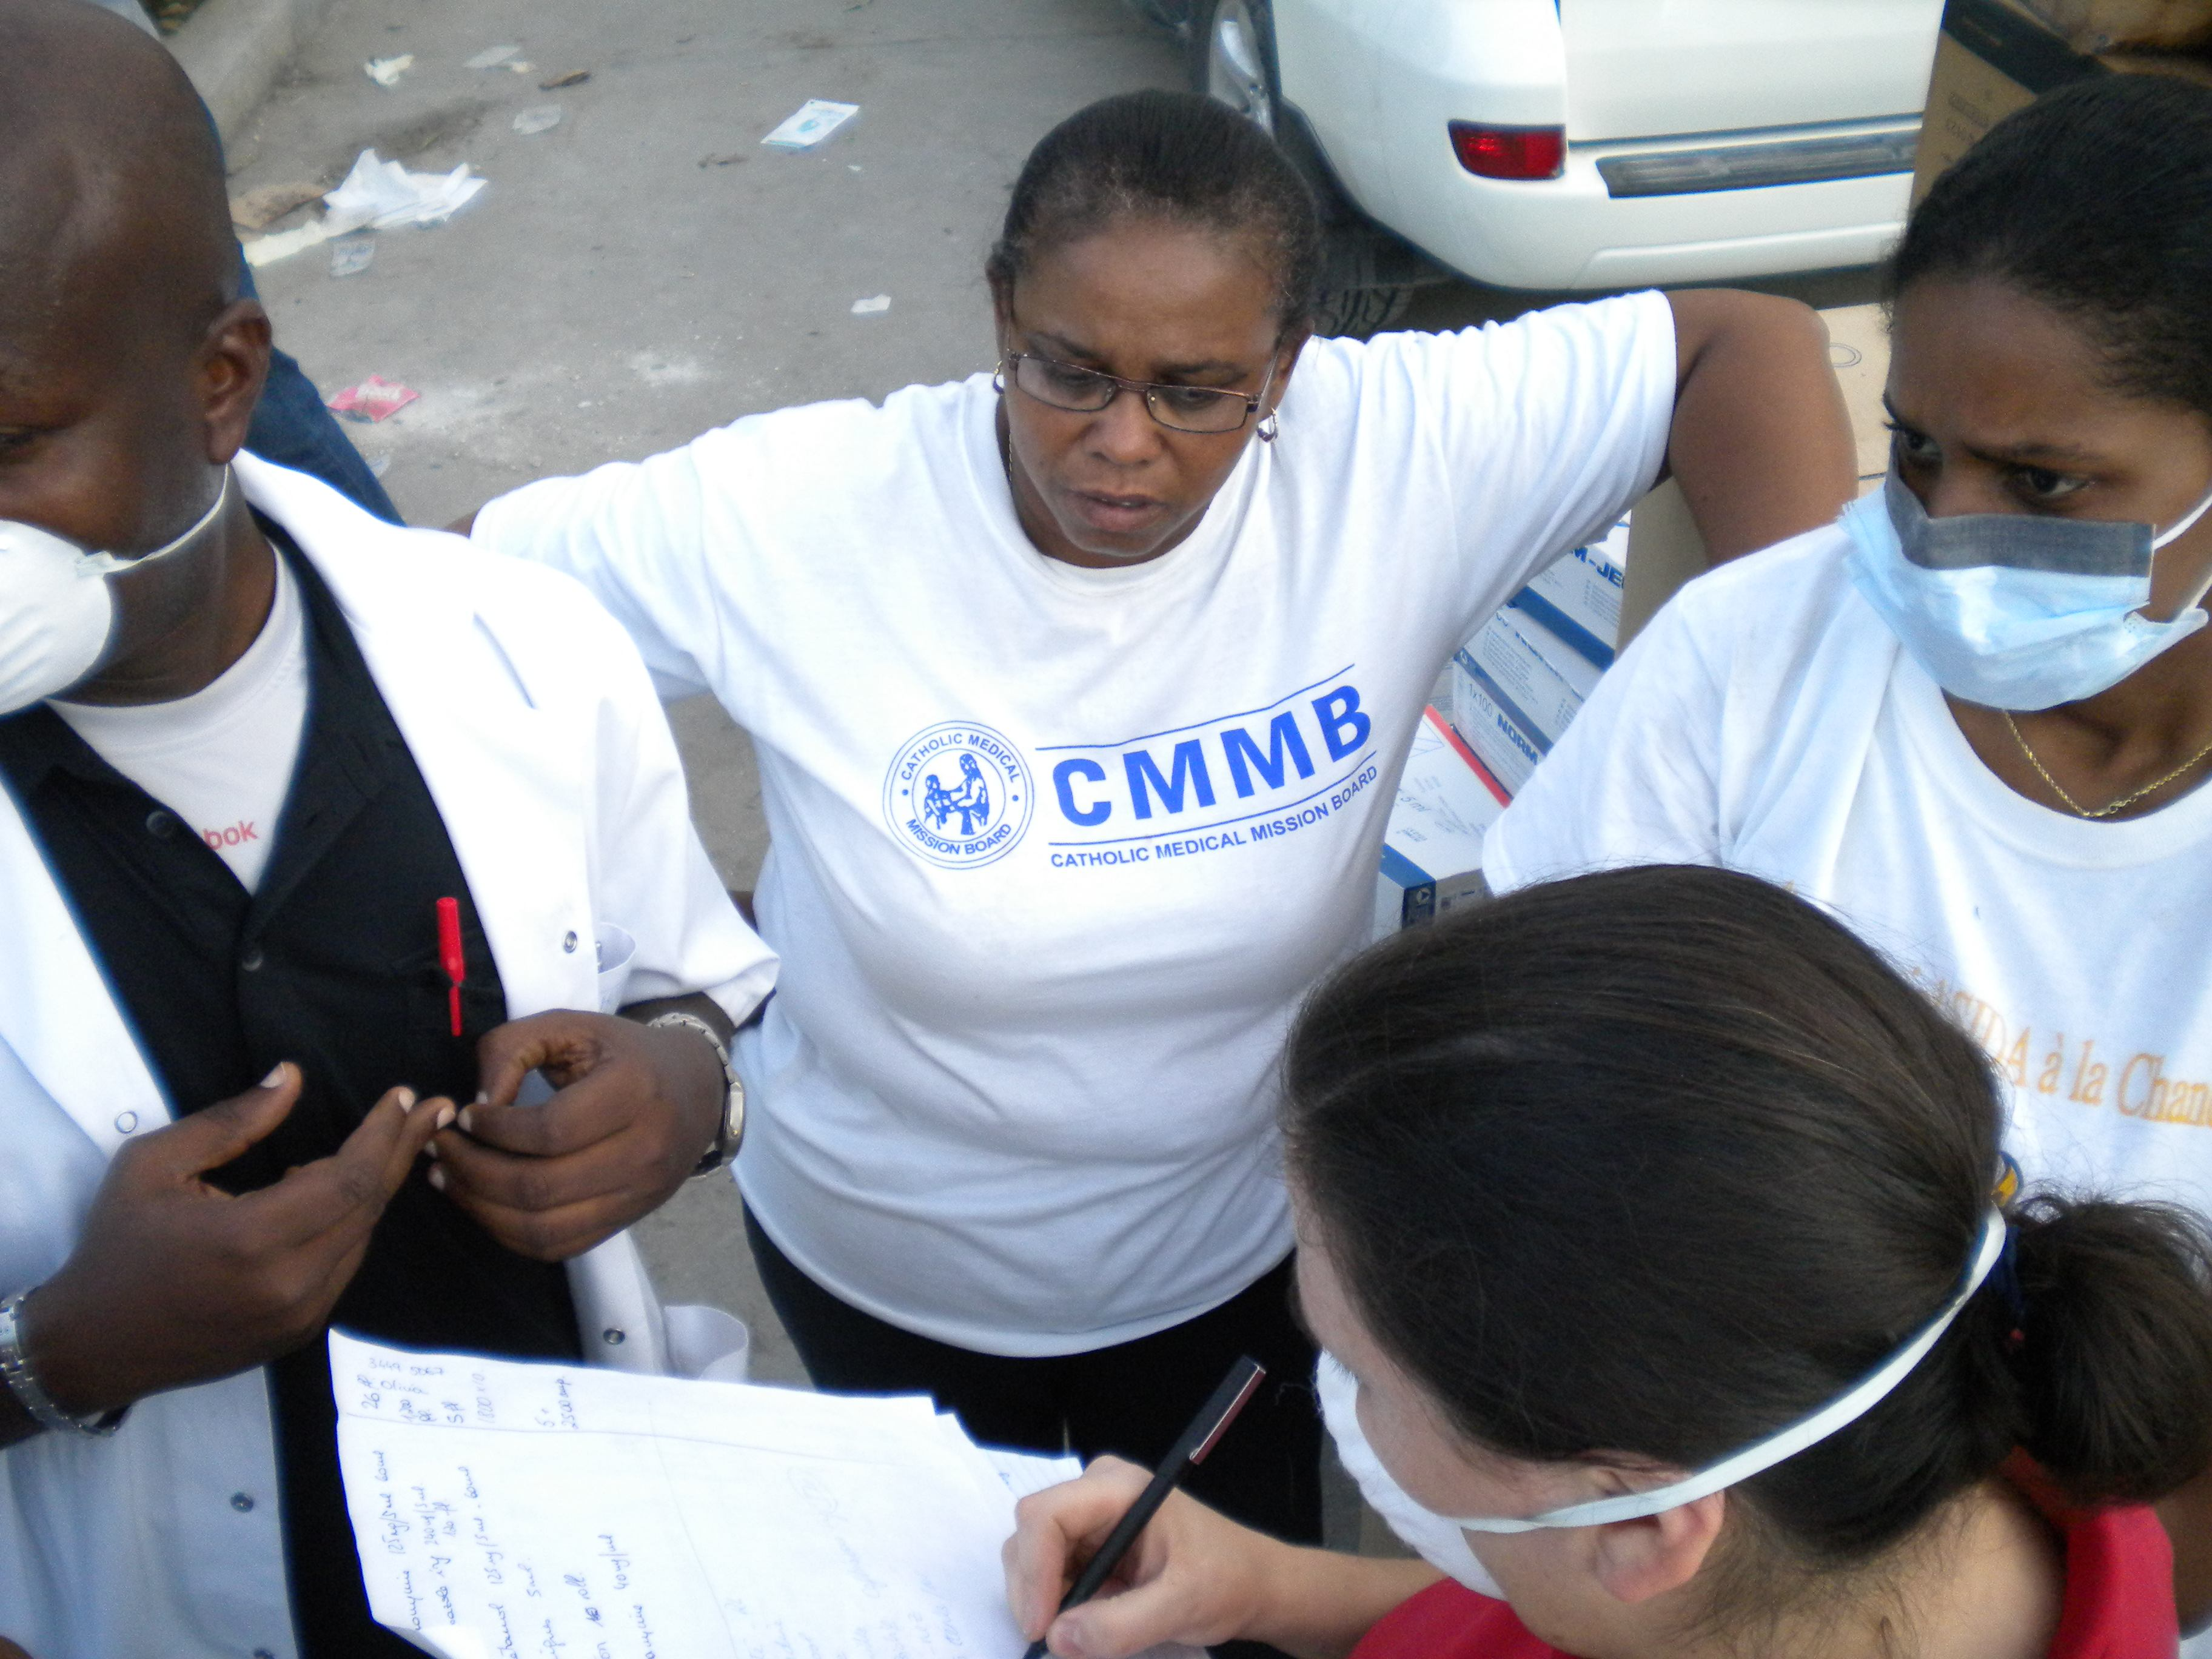 Dr. Dianne during the 2010 earthquake in haiti